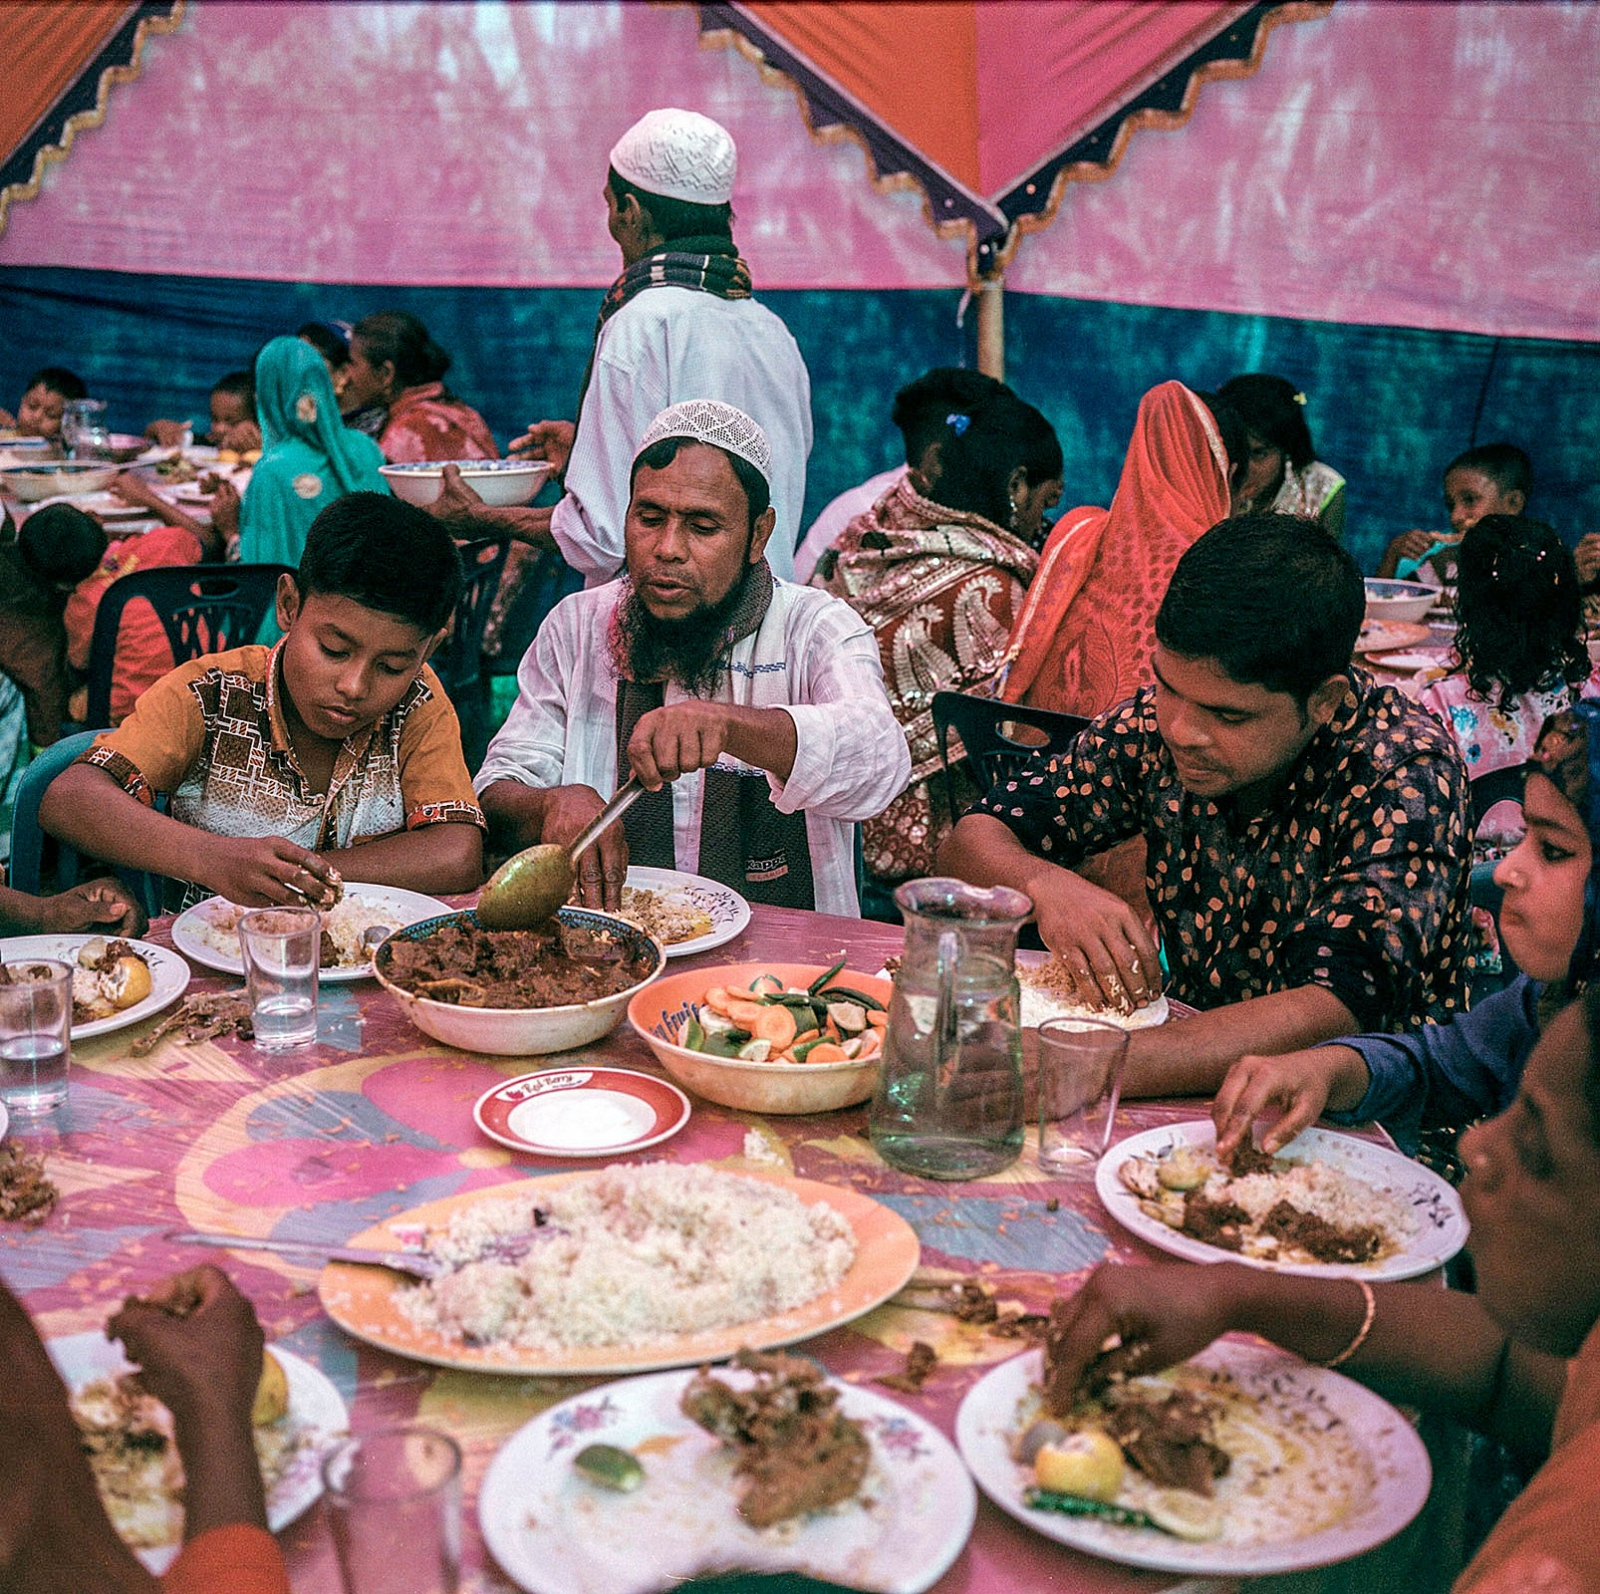 Guests are served chicken roast, mutton buryani and fish curry along with rice and eggs in Manehor, a typical wedding meal spread.